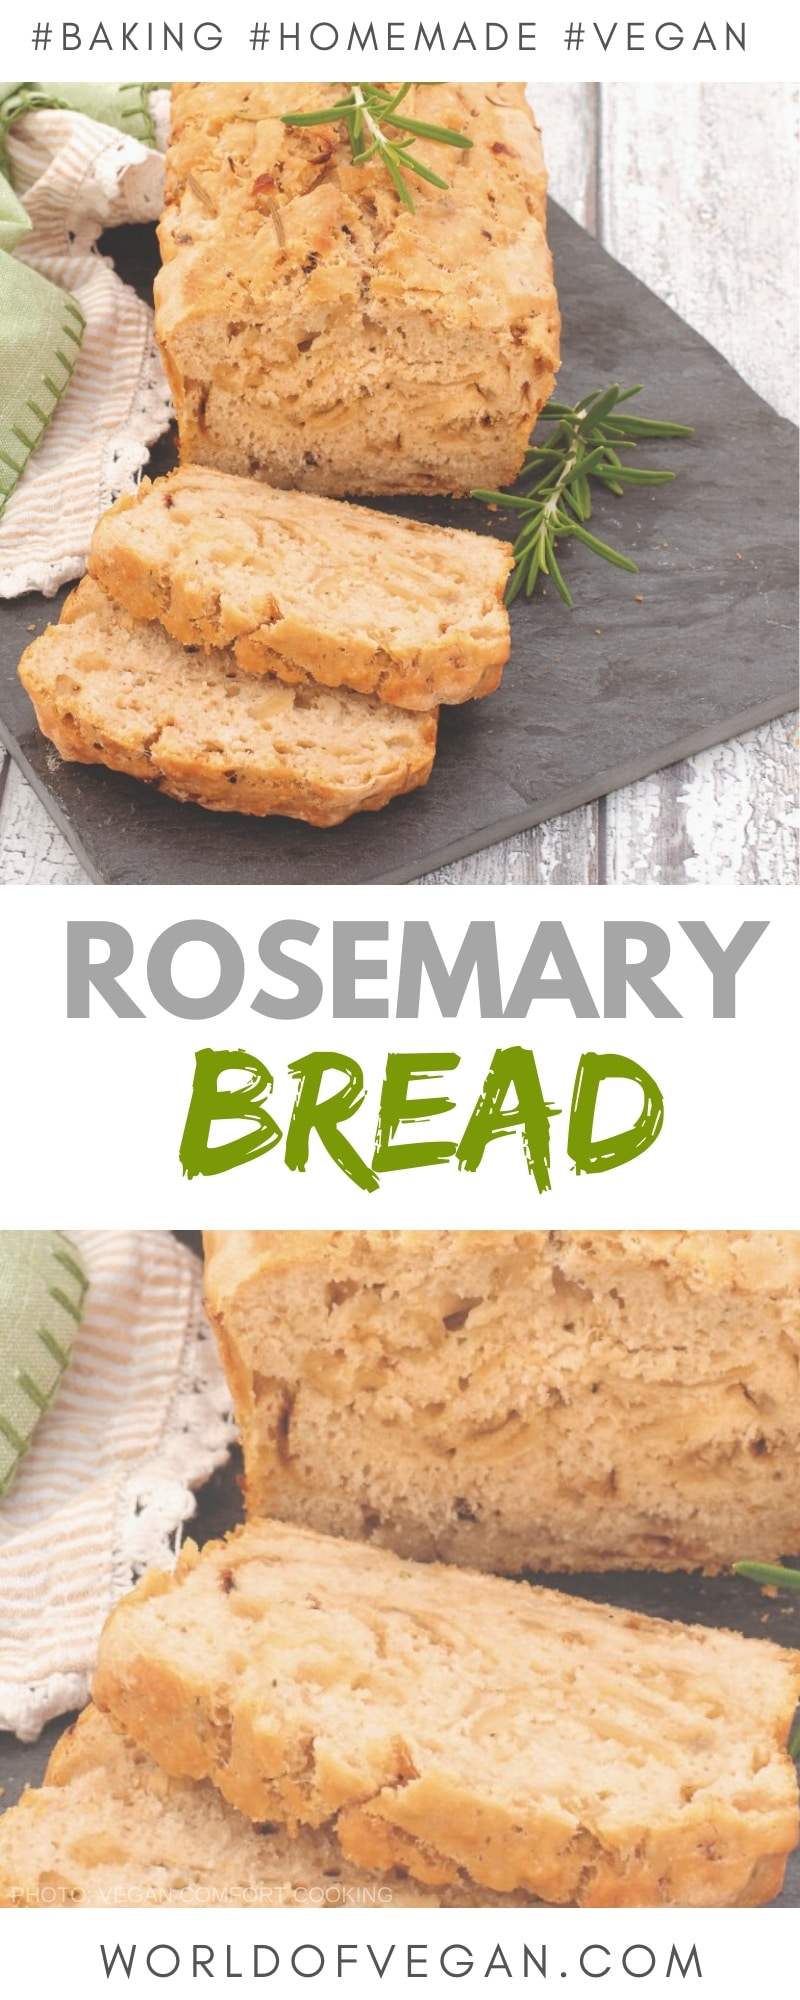 Rosemary Beer Bread Recipe | Homemade Bread | World of Vegan | #bread #rosemary #beer #homemade #baking #vegan #worldofvegan